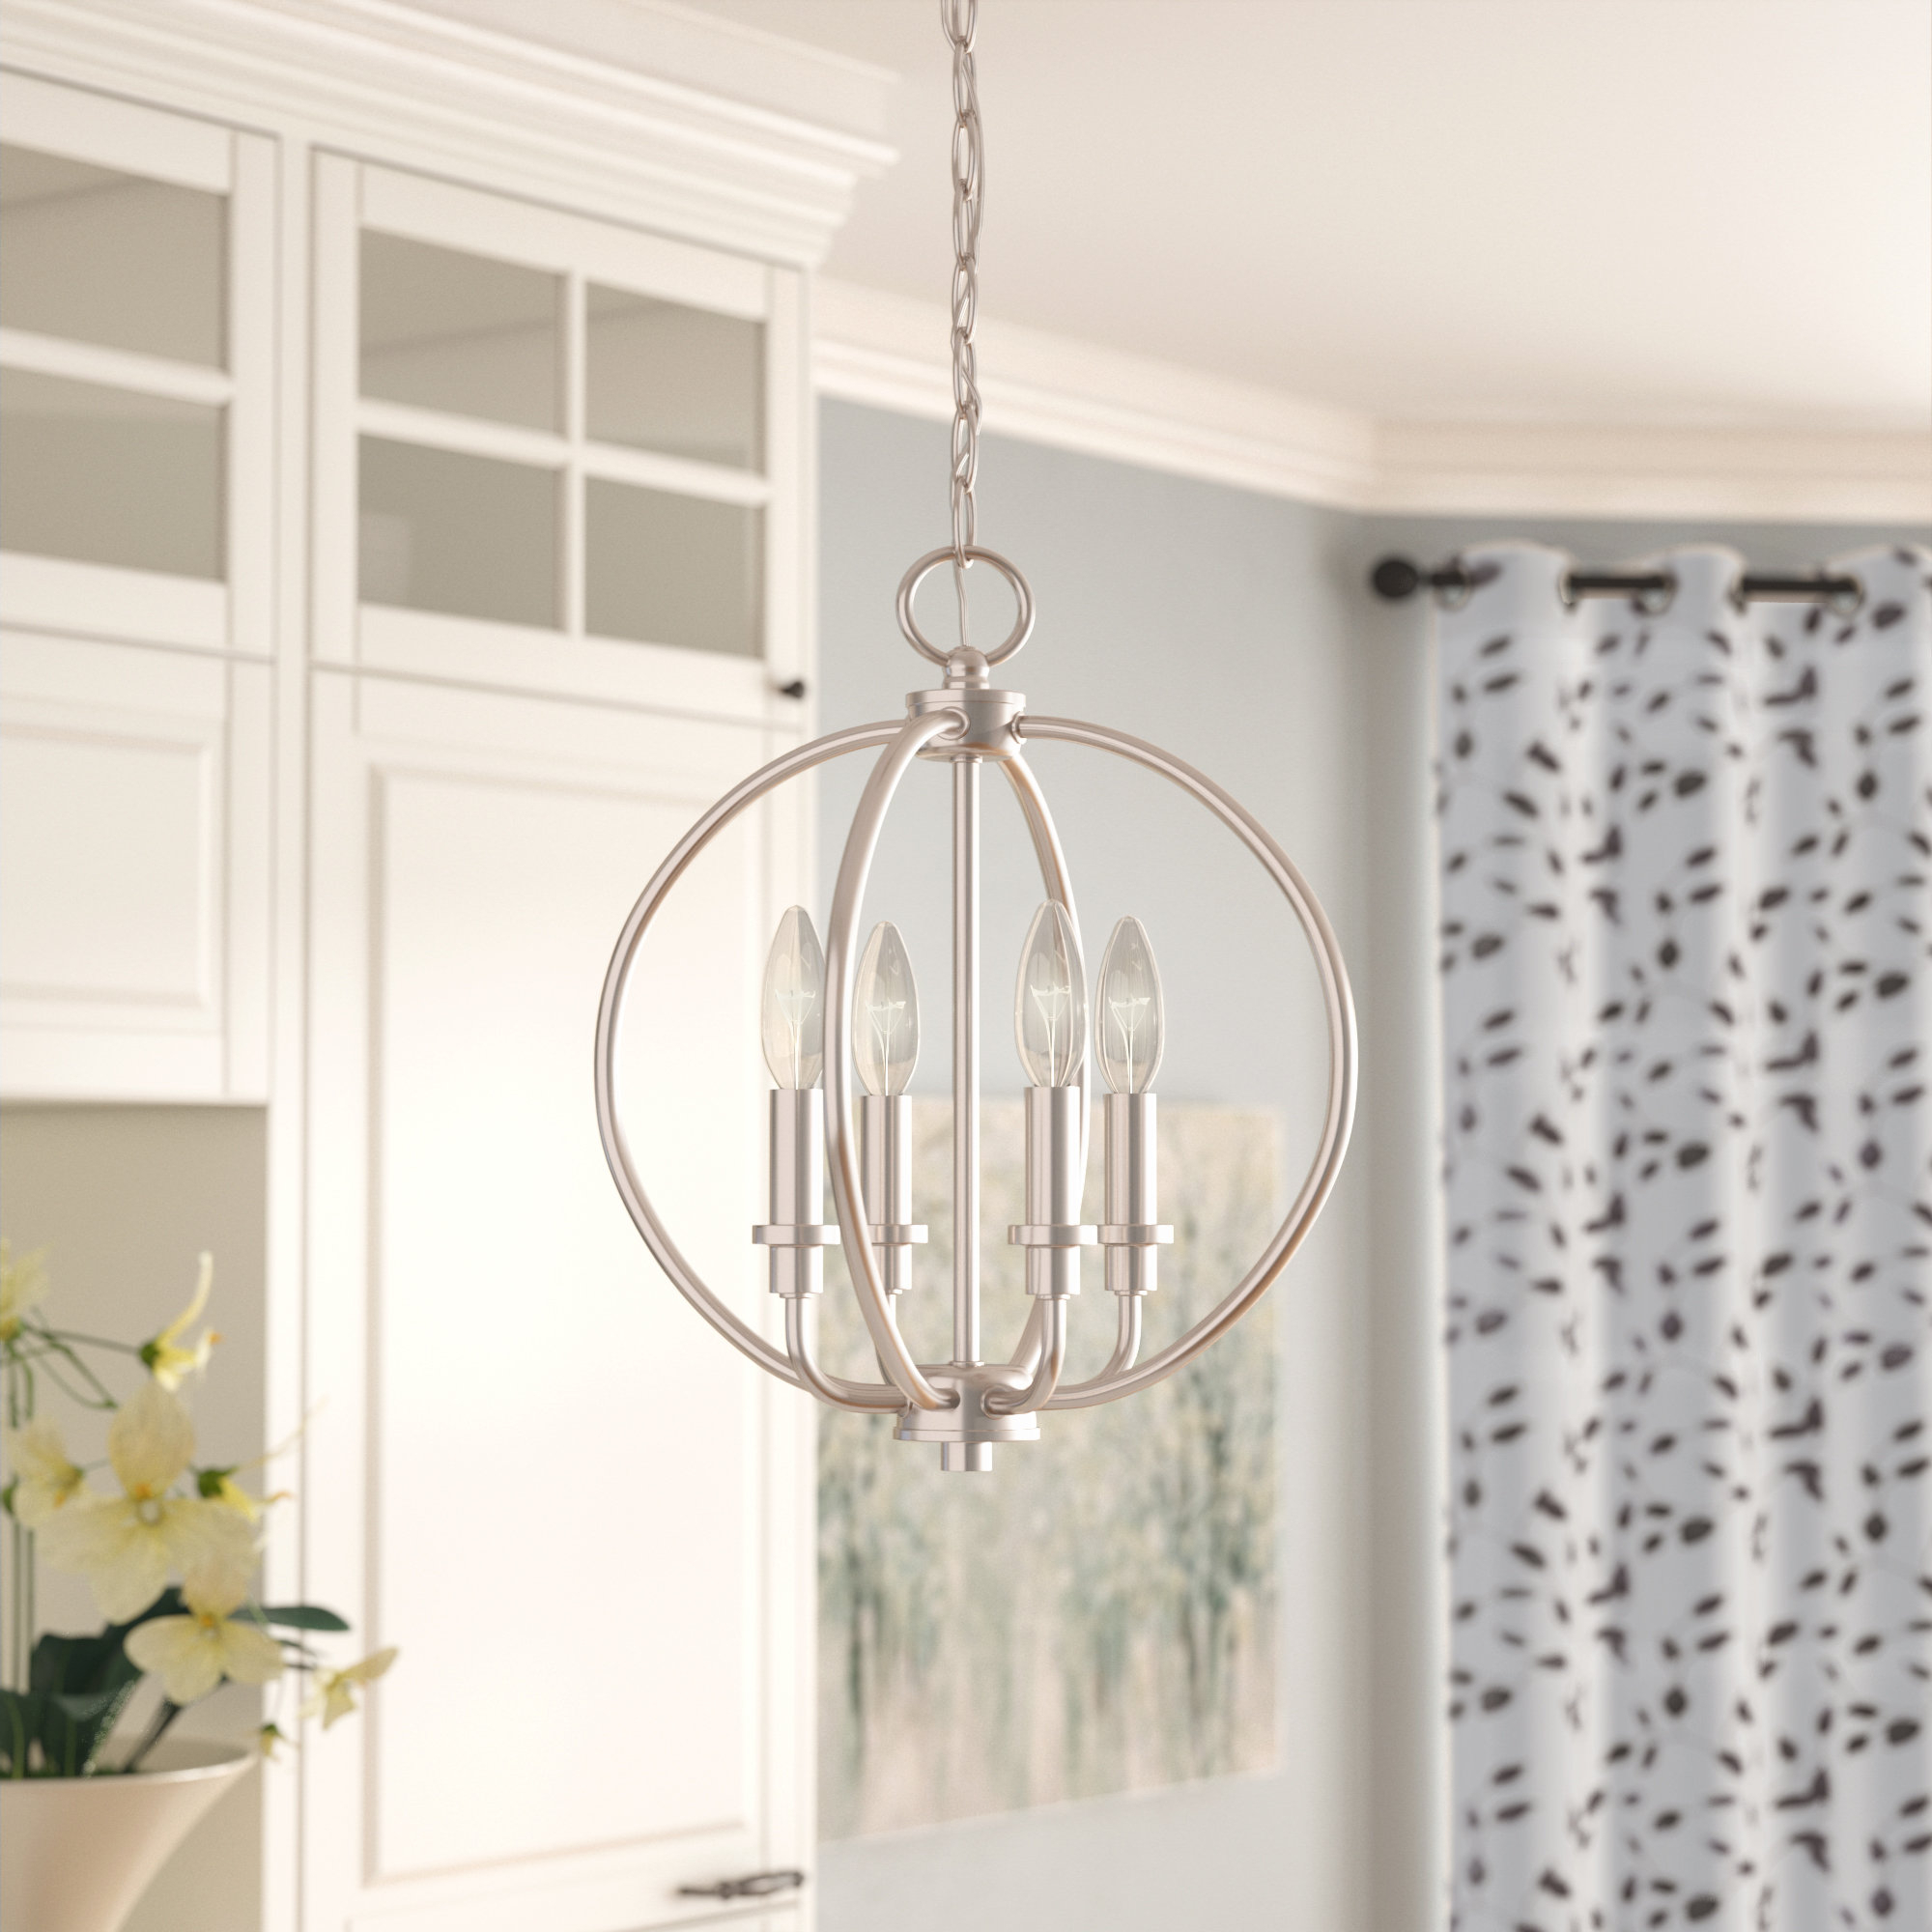 Antique Silver Leaf Chandelier You'll Love In 2019 | Wayfair intended for Cavanagh 4-Light Geometric Chandeliers (Image 1 of 30)